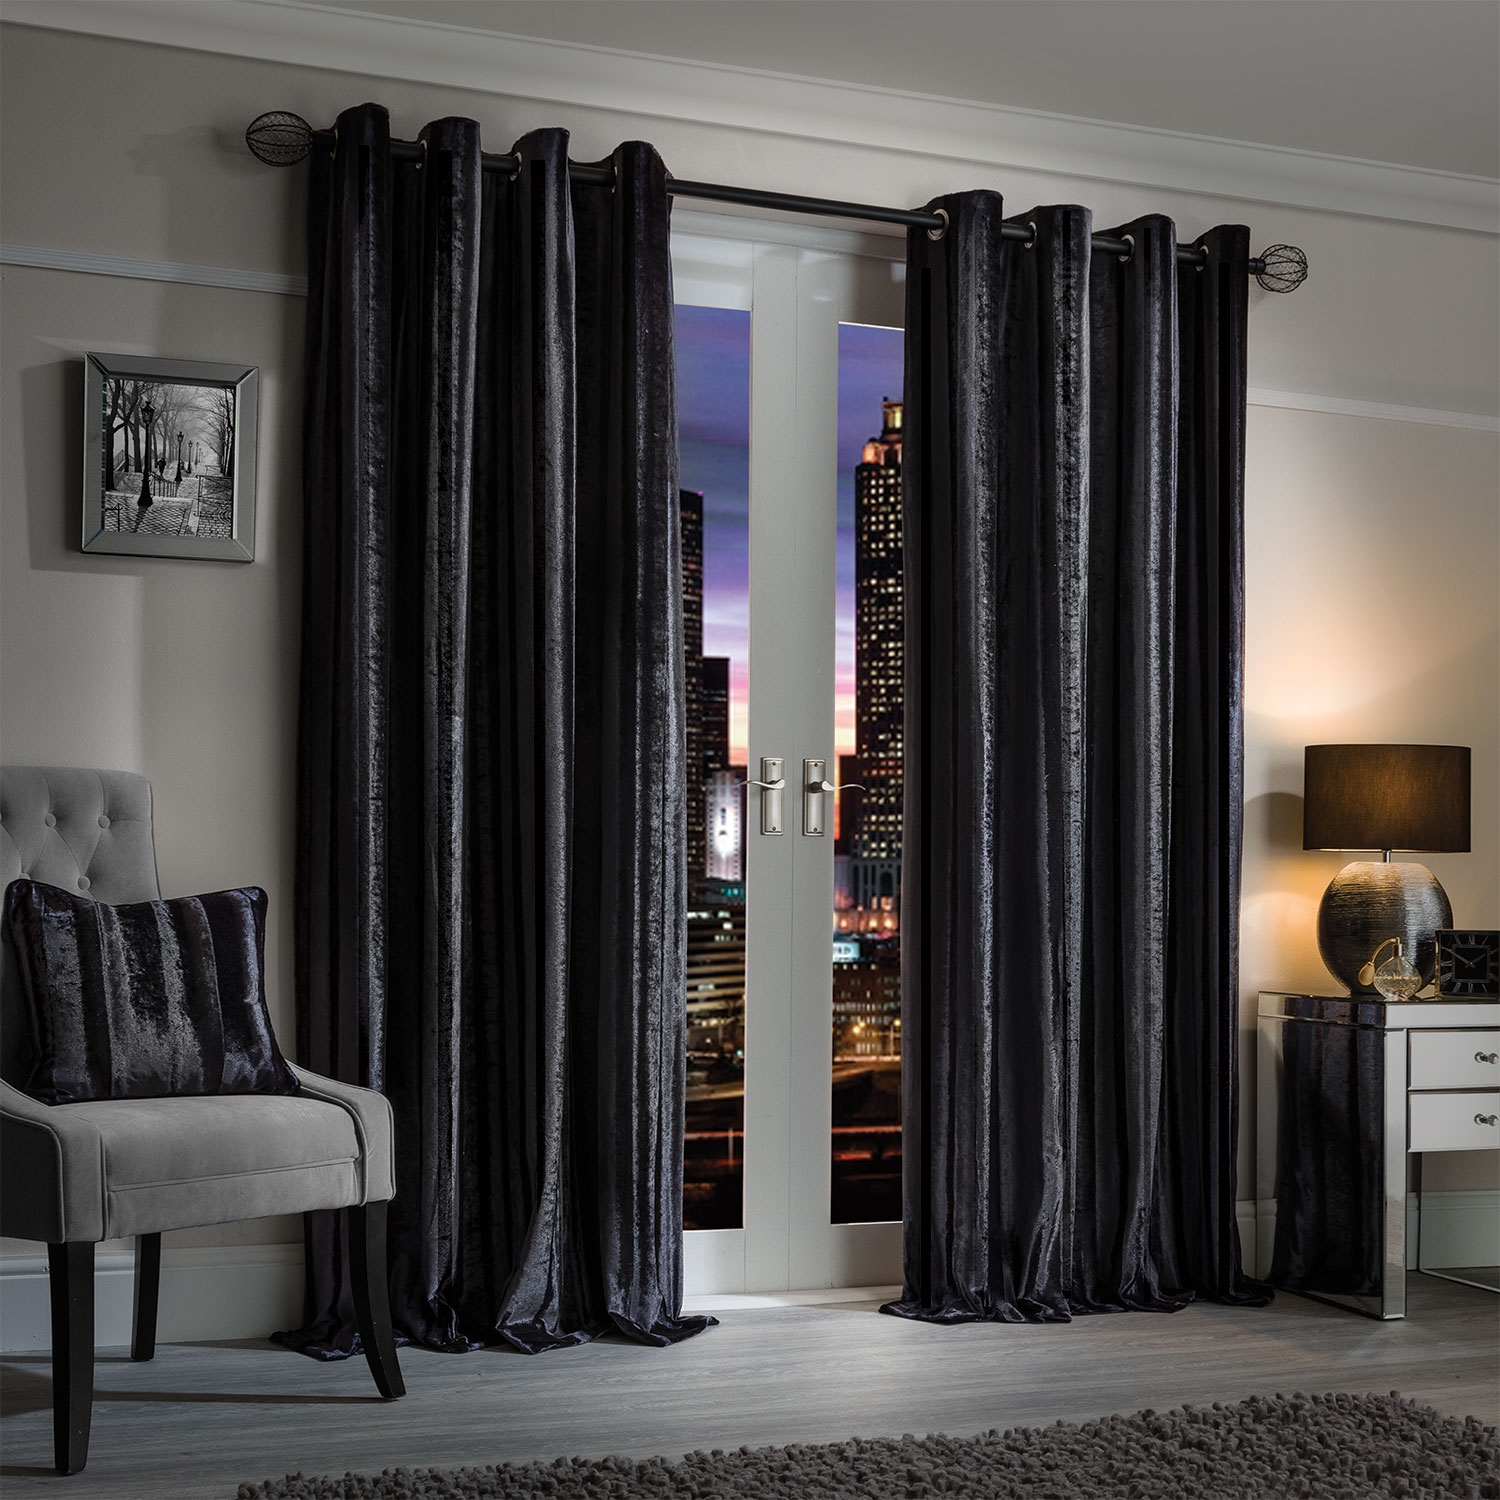 of image stage images stock curtain drapes curtains velvet and photo